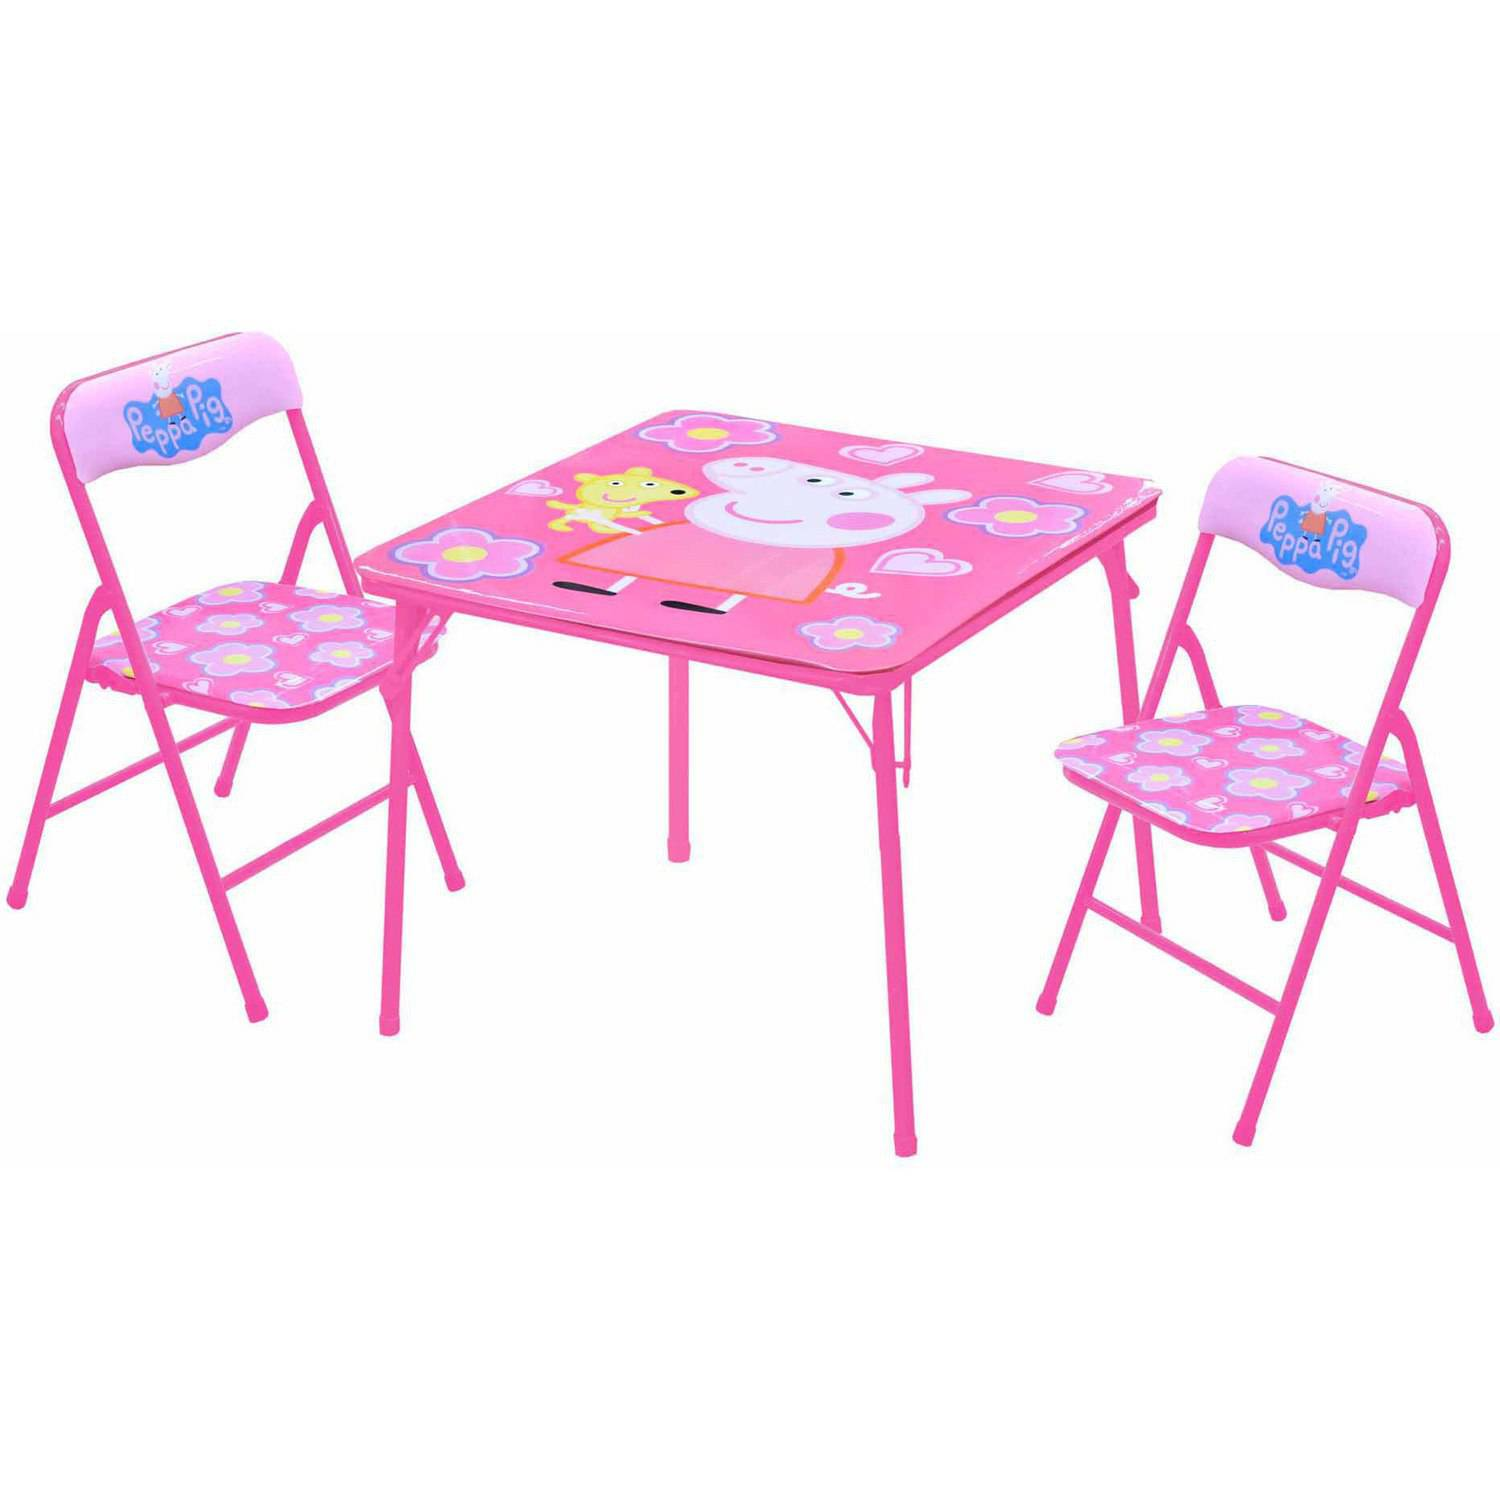 Peppa Pig Table and Chairs Set  sc 1 st  Walmart & Peppa Pig Table and Chairs Set - Walmart.com